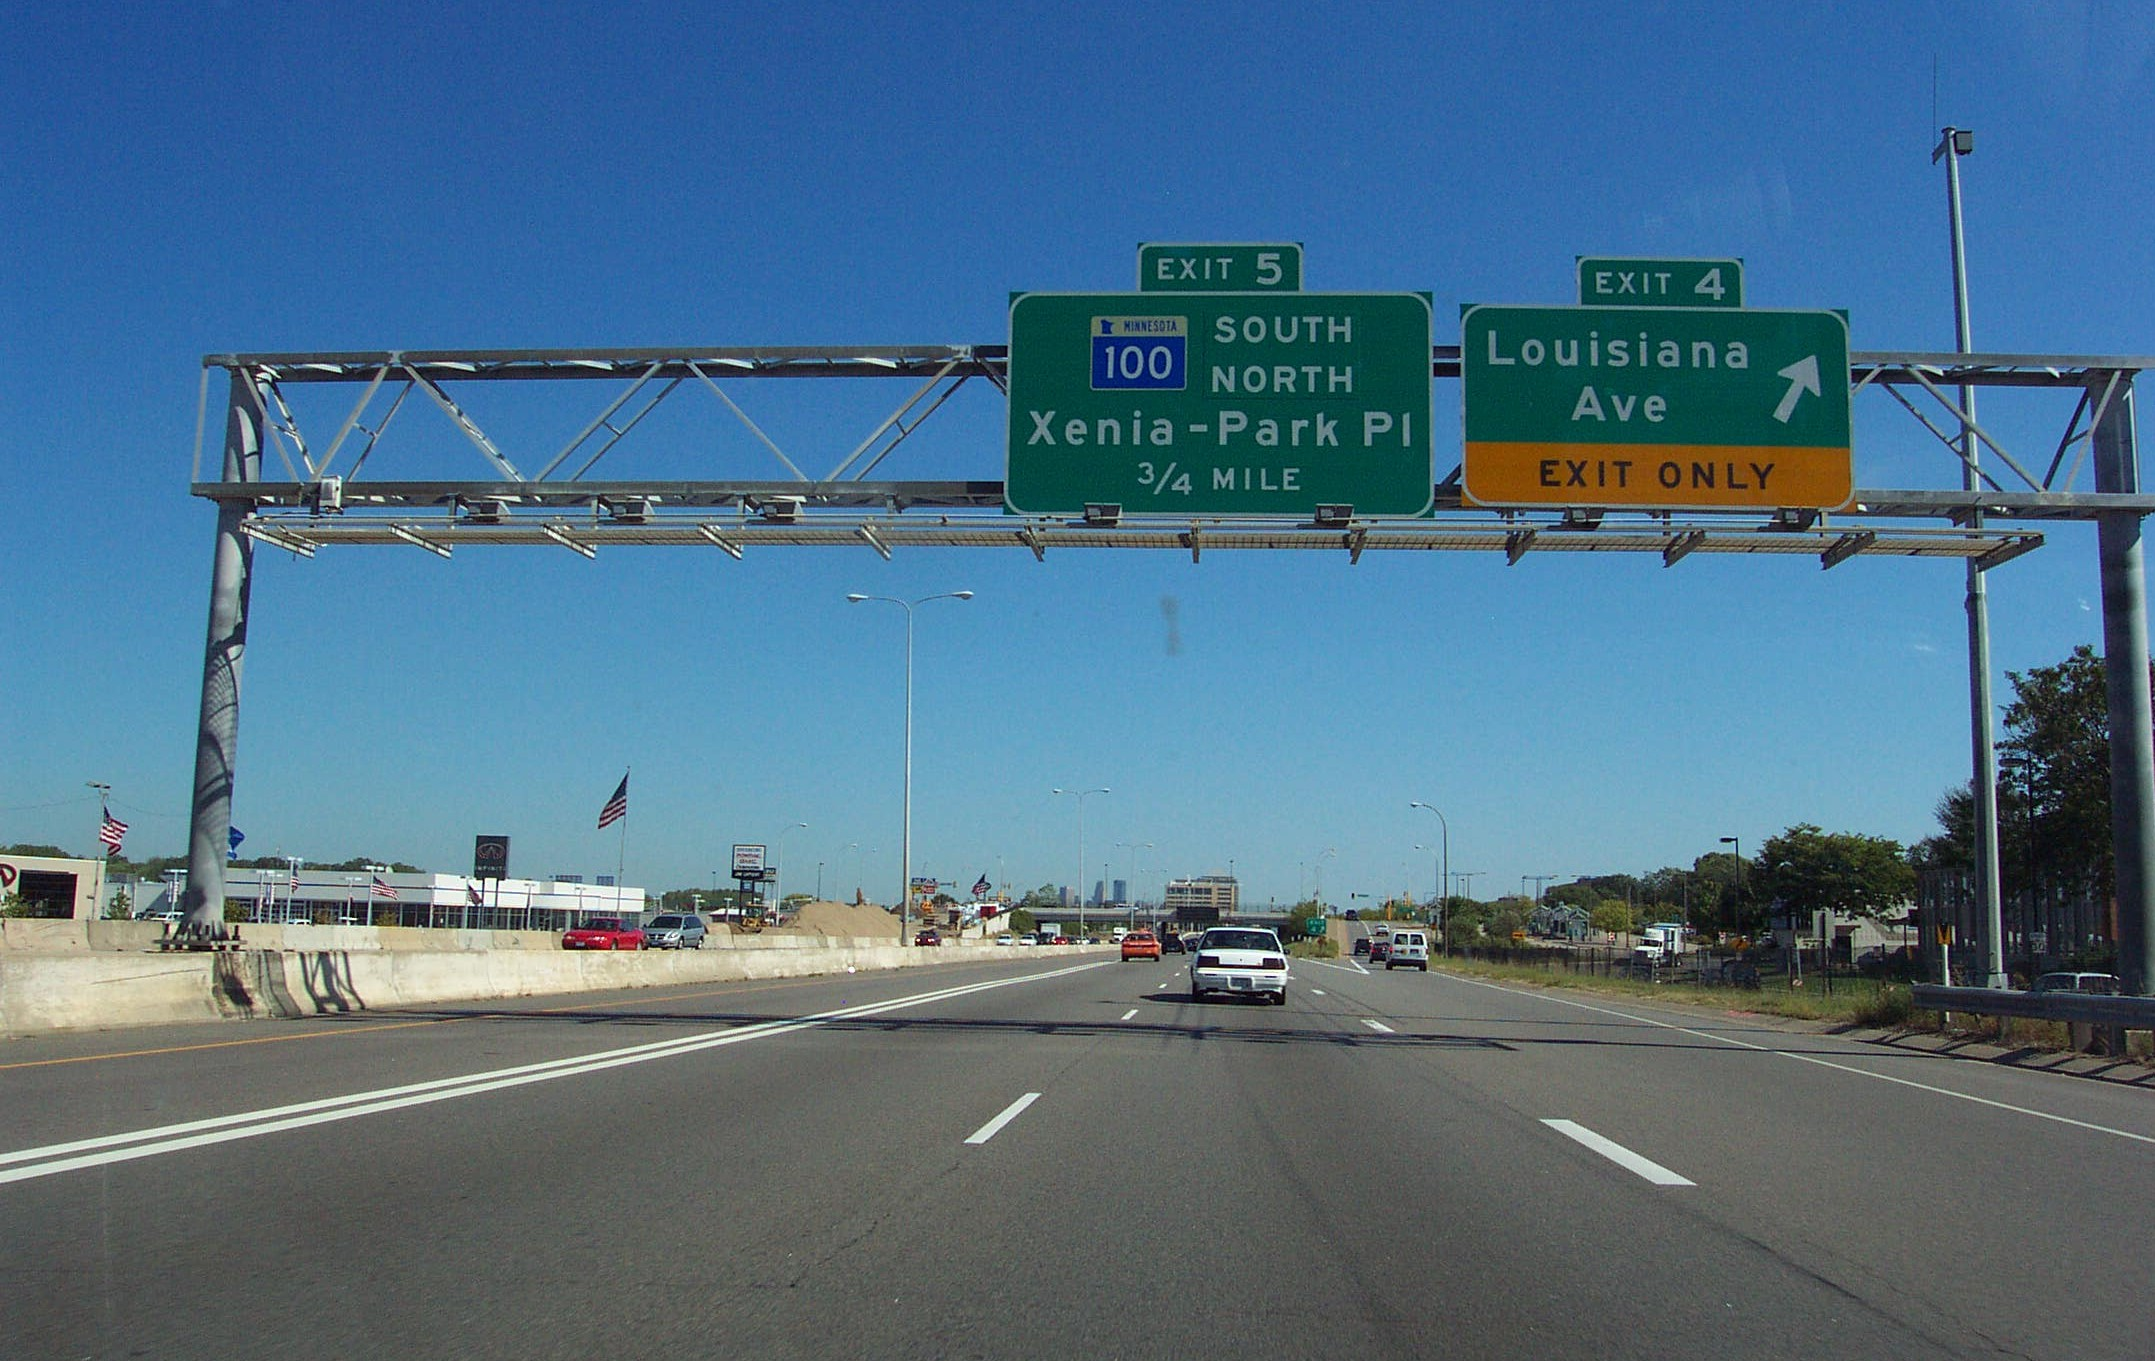 Evaluation of the Effect of MnPASS Lane Design on Mobility and Safety